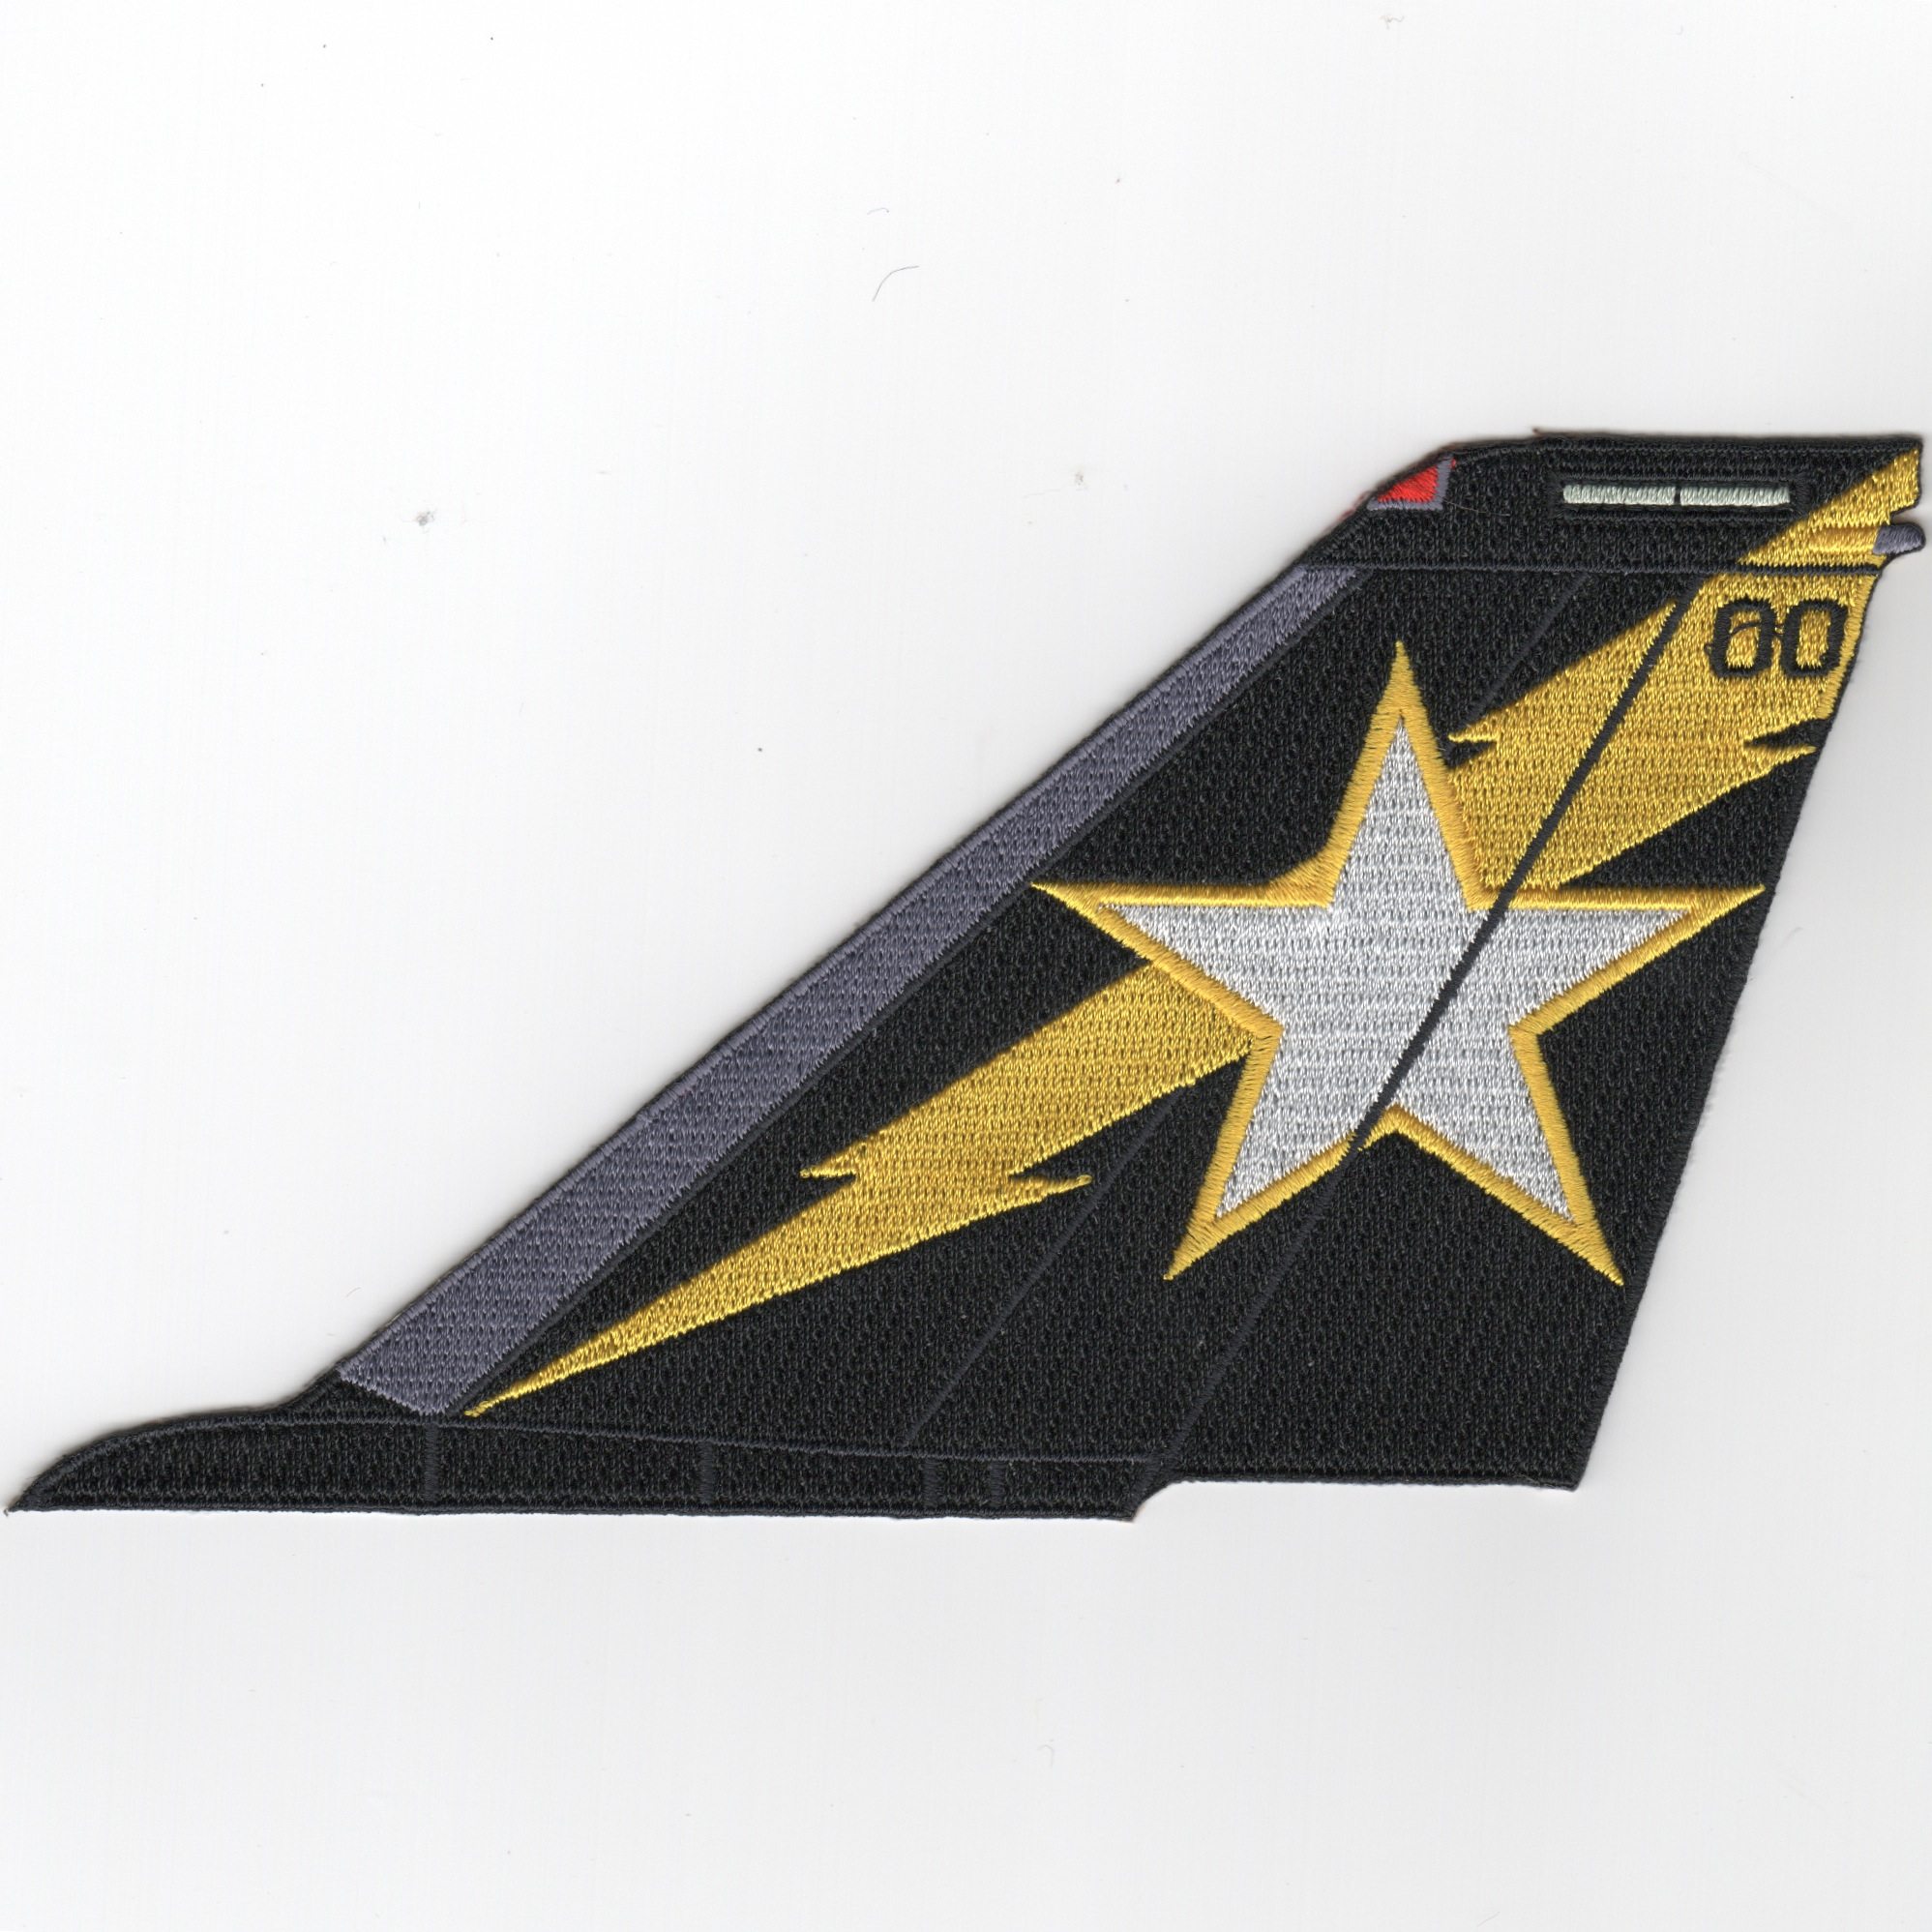 VF-33 F-14 Tailfin (No Text)